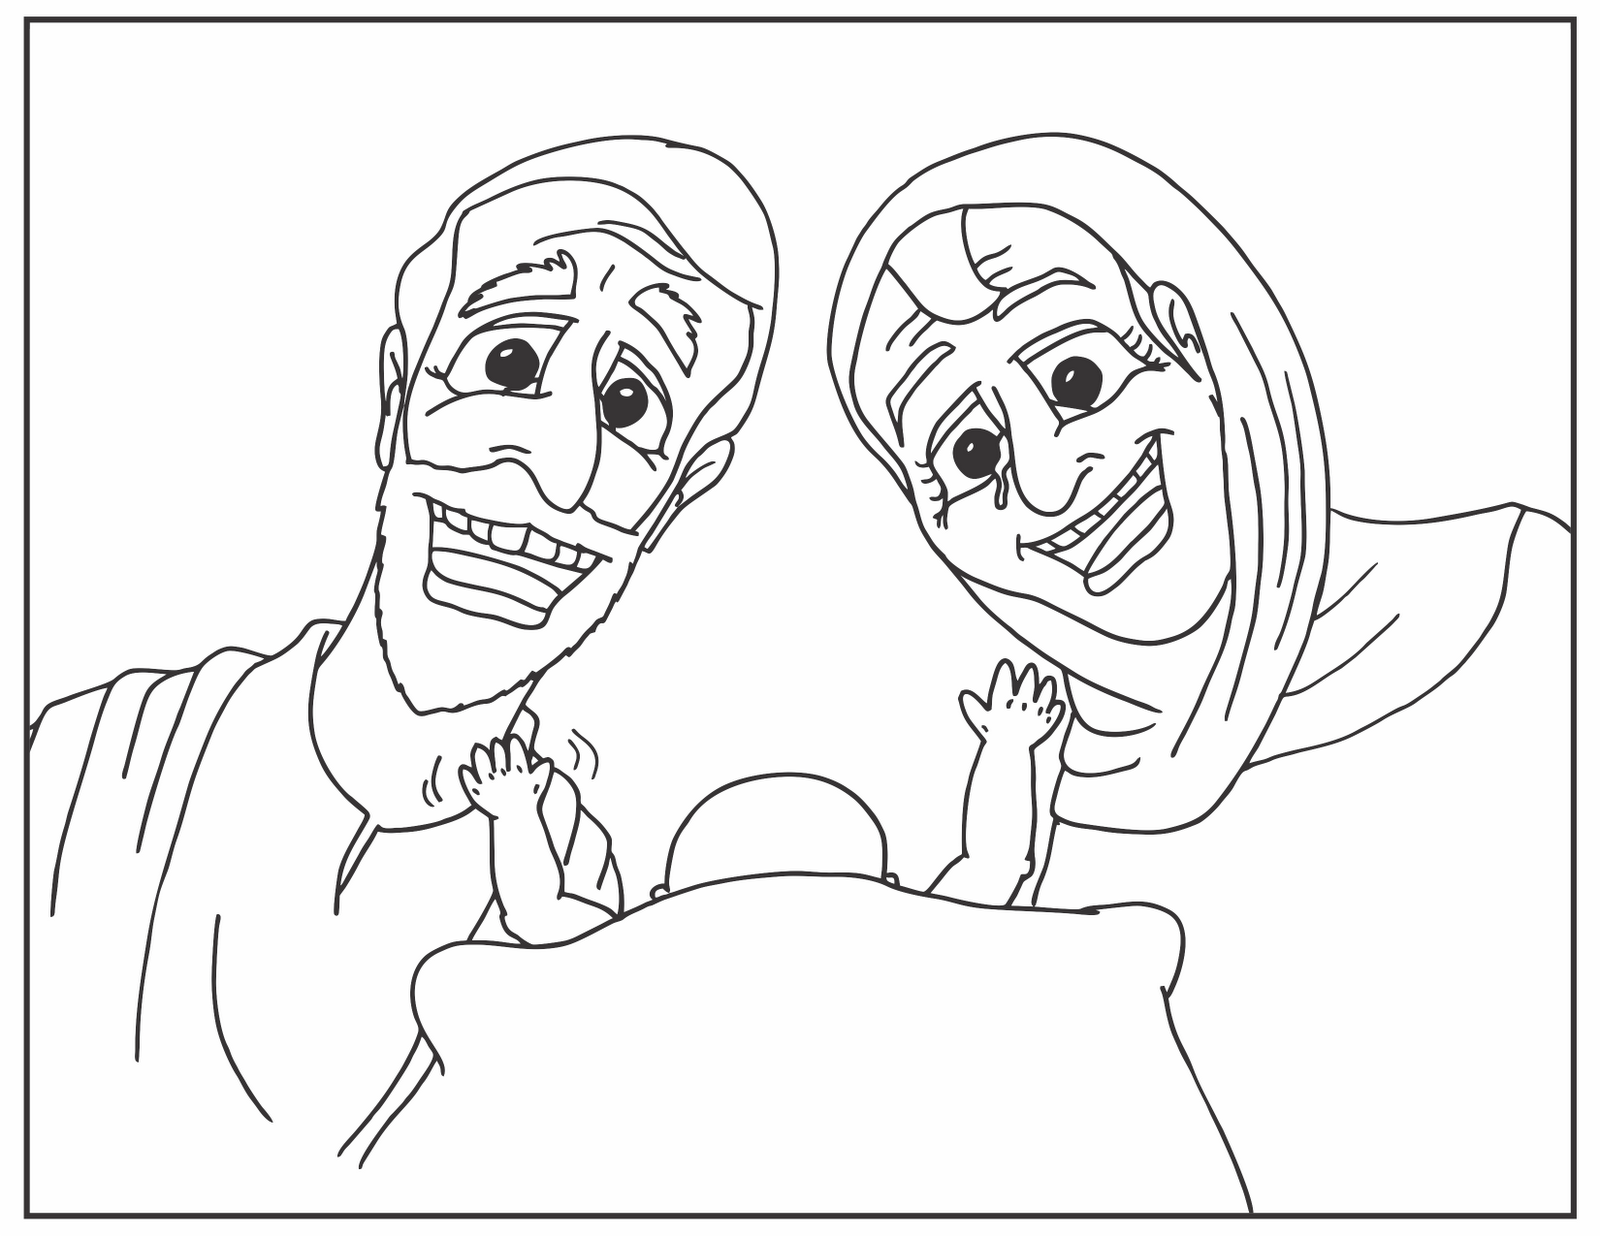 baby isaac bible coloring pages - photo#8